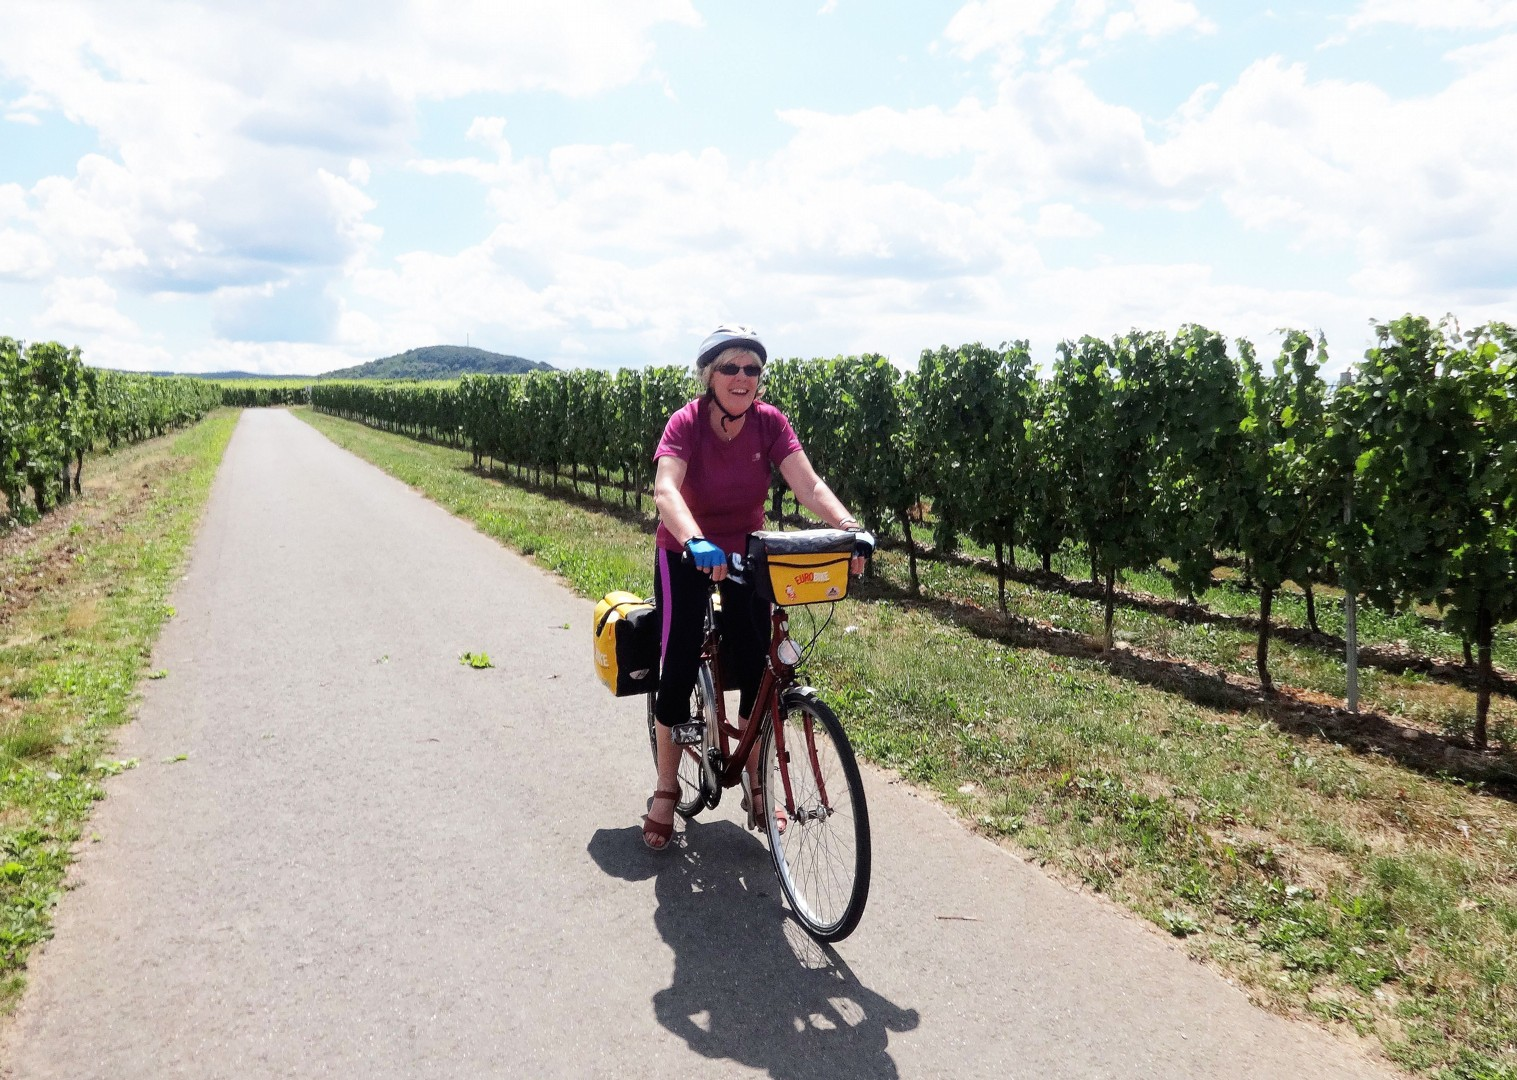 leisure-cycling-holiday-in-germany-moselle-valley-eltz-castle.jpg - Germany - Moselle Valley - Leisure Cycling